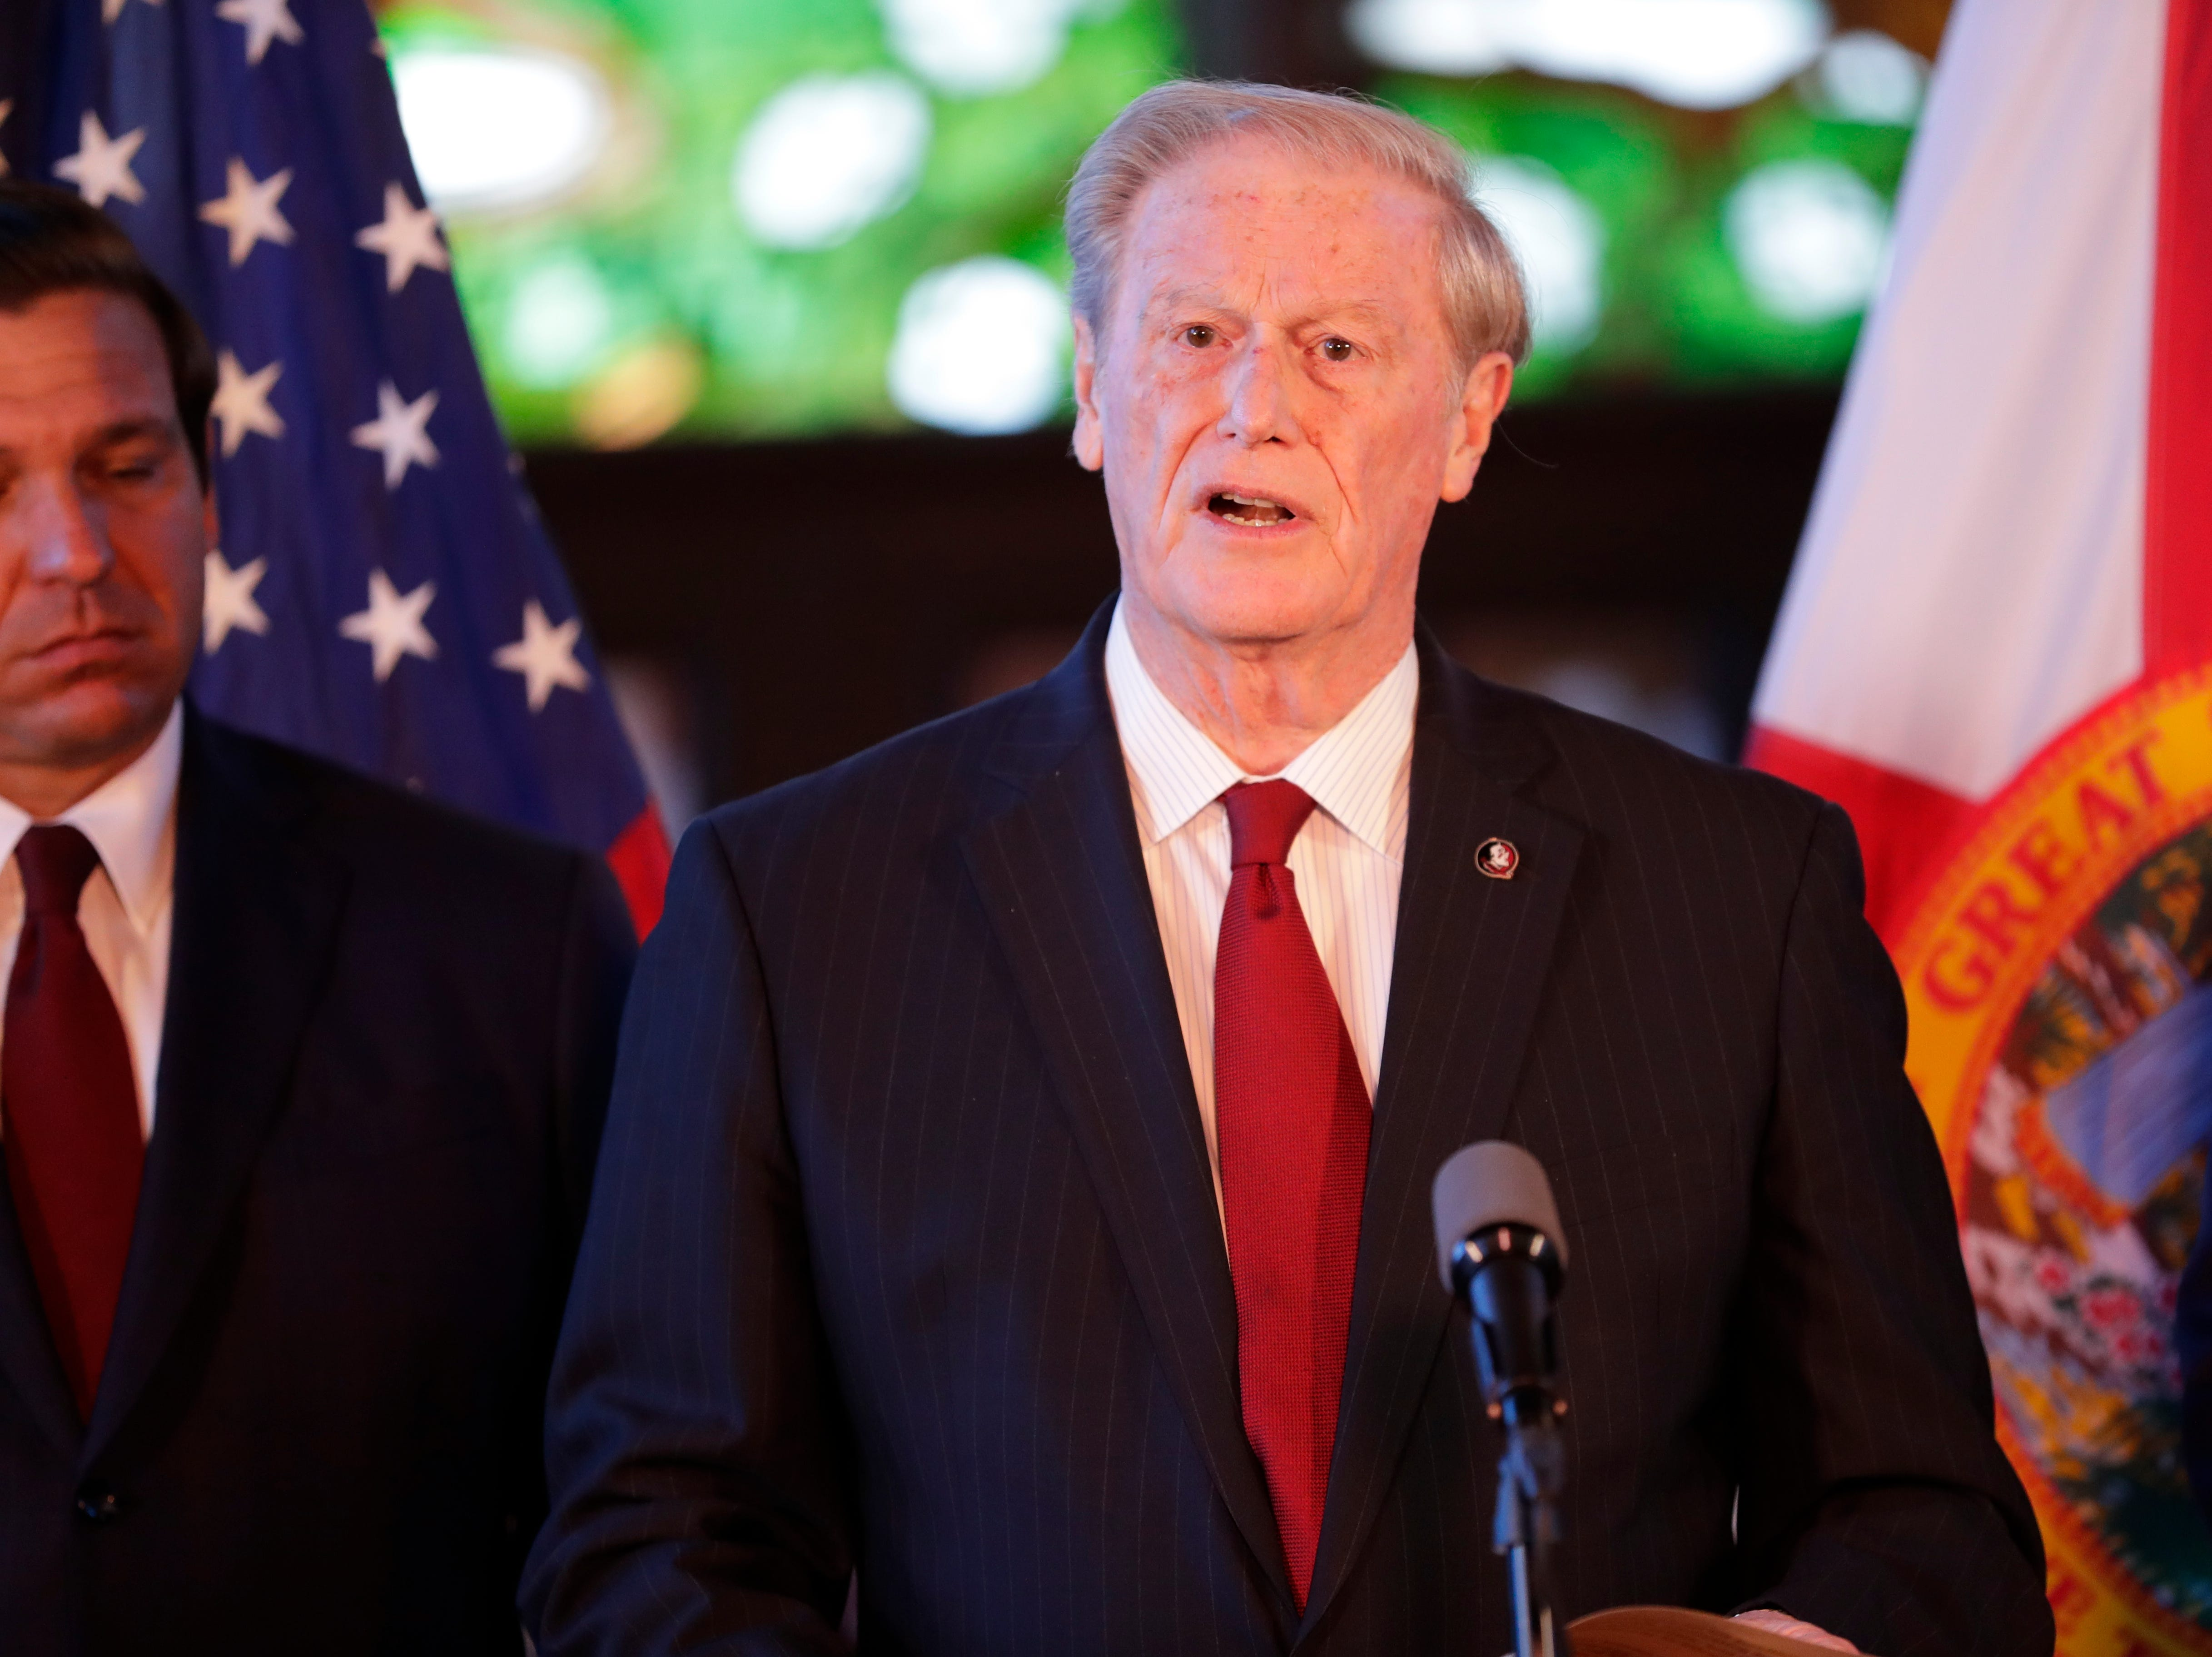 Florida State University President John Thrasher announces Gov. Ron DeSantis' affirmation of free speech rights on all higher education campuses in the state of Florida in Dodd Hall at FSU Monday, April 15, 2019.